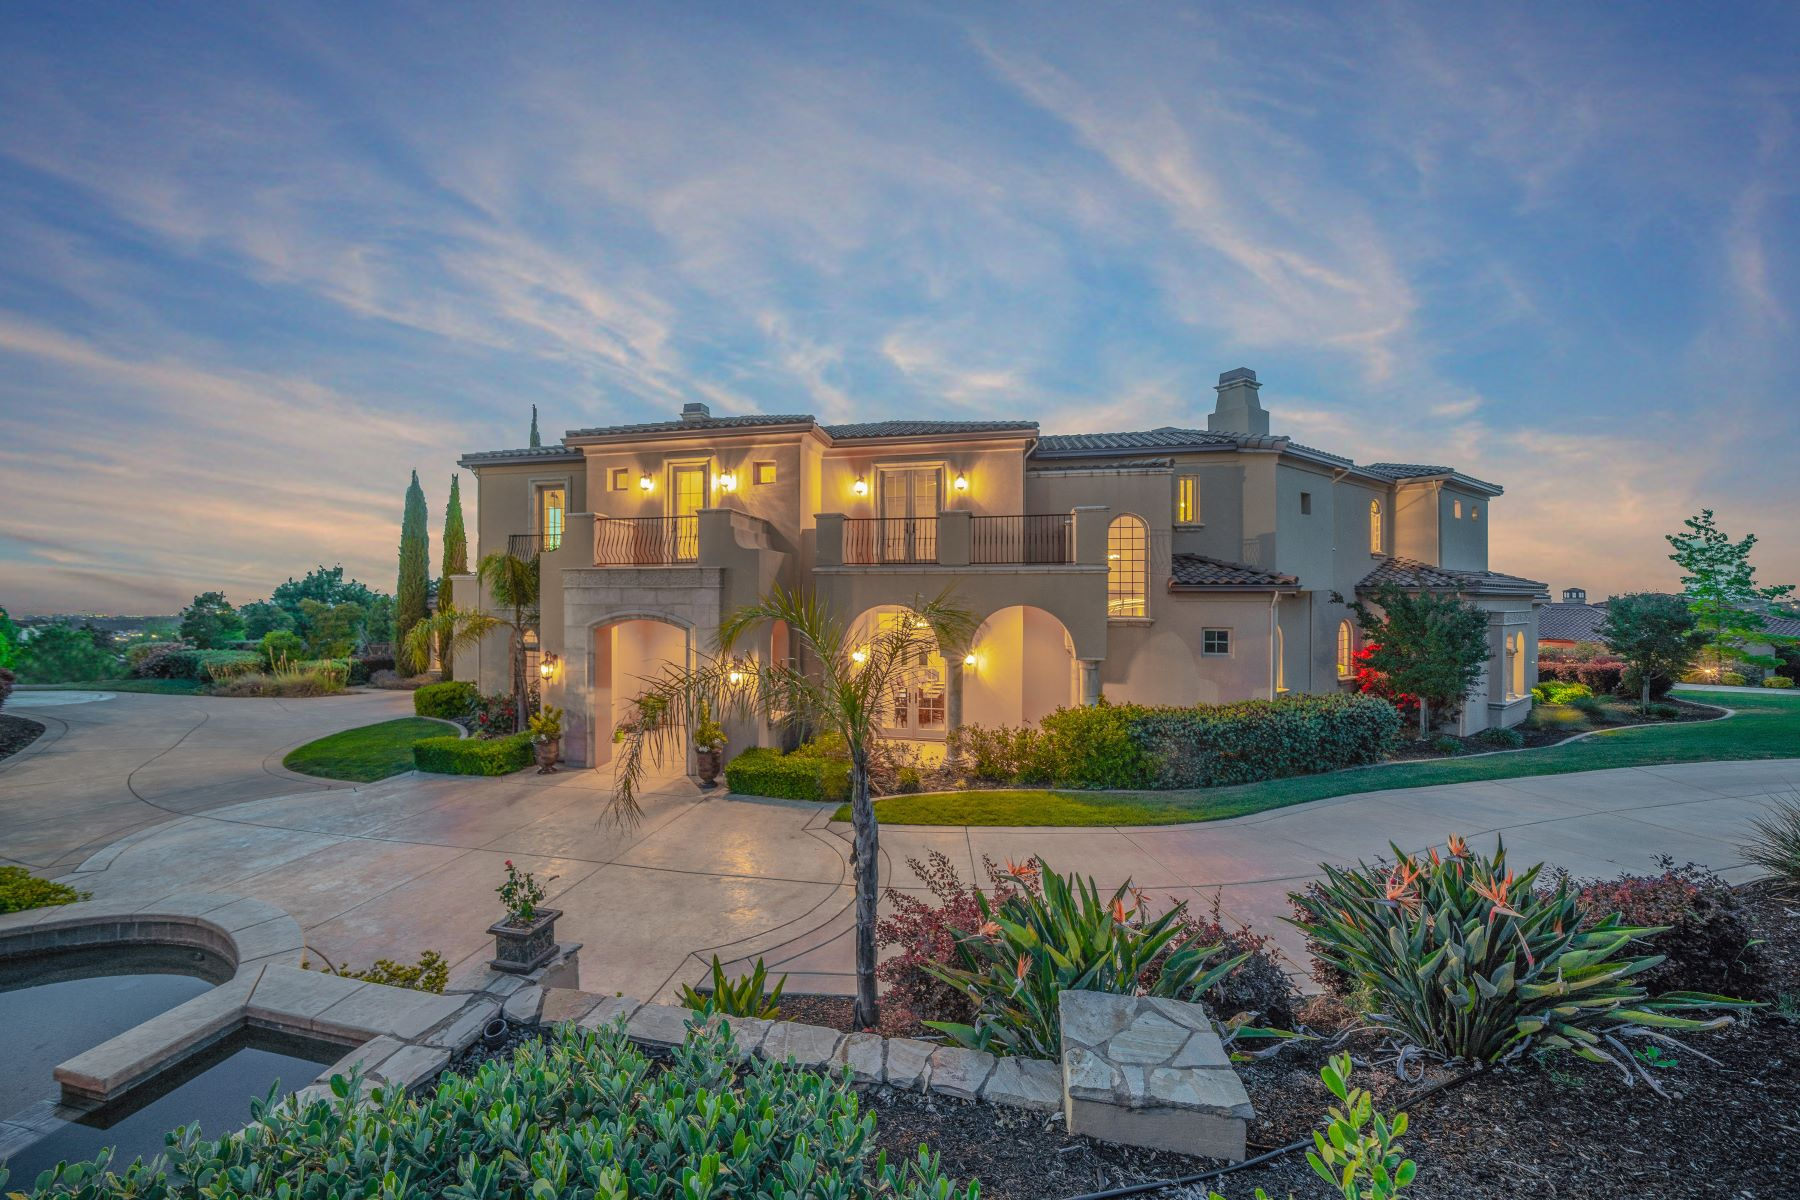 Single Family Homes for Active at 3403 Vista De Madera, Lincoln, CA 95648 3403 Vista De Madera Lincoln, California 95648 United States